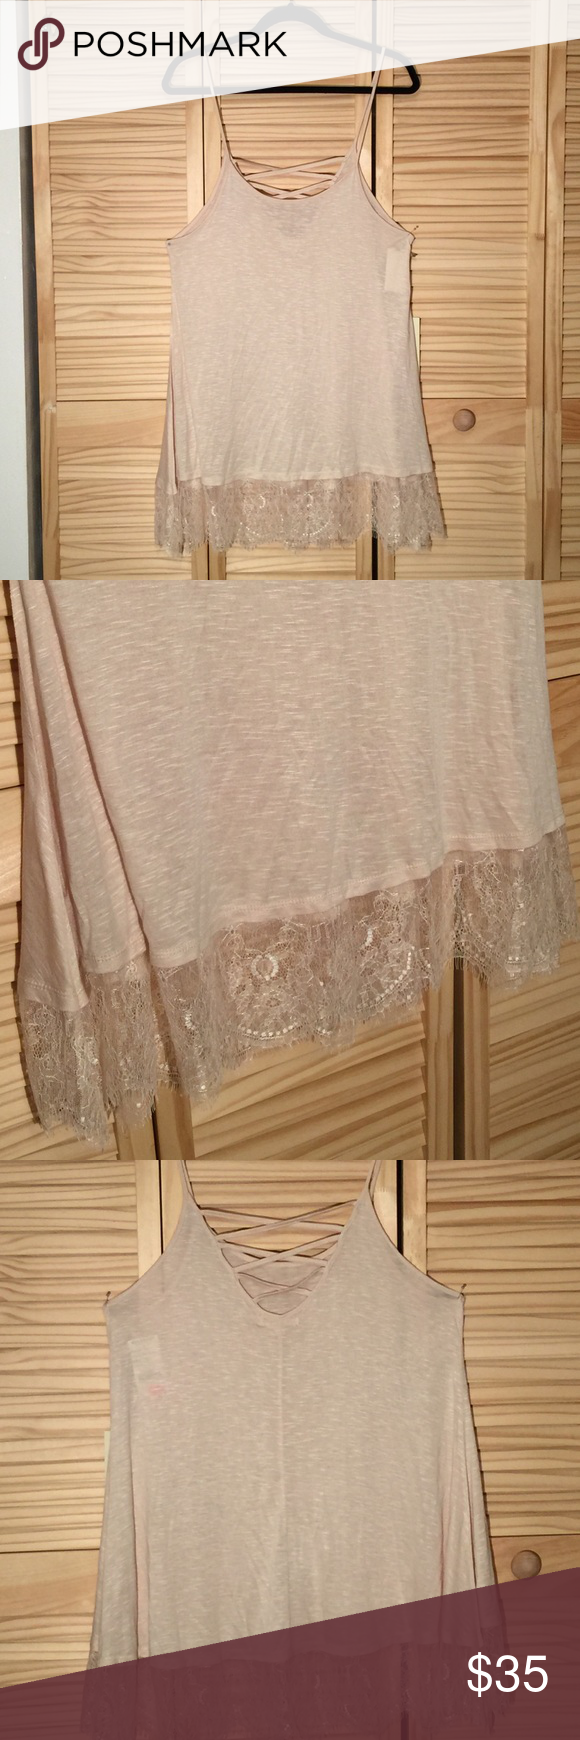 Ivory laced trim tank Never worn Ivory Lace trim tank top 26 inches in length 18 inches in width 100% rayon Isbel Tops Tank Tops